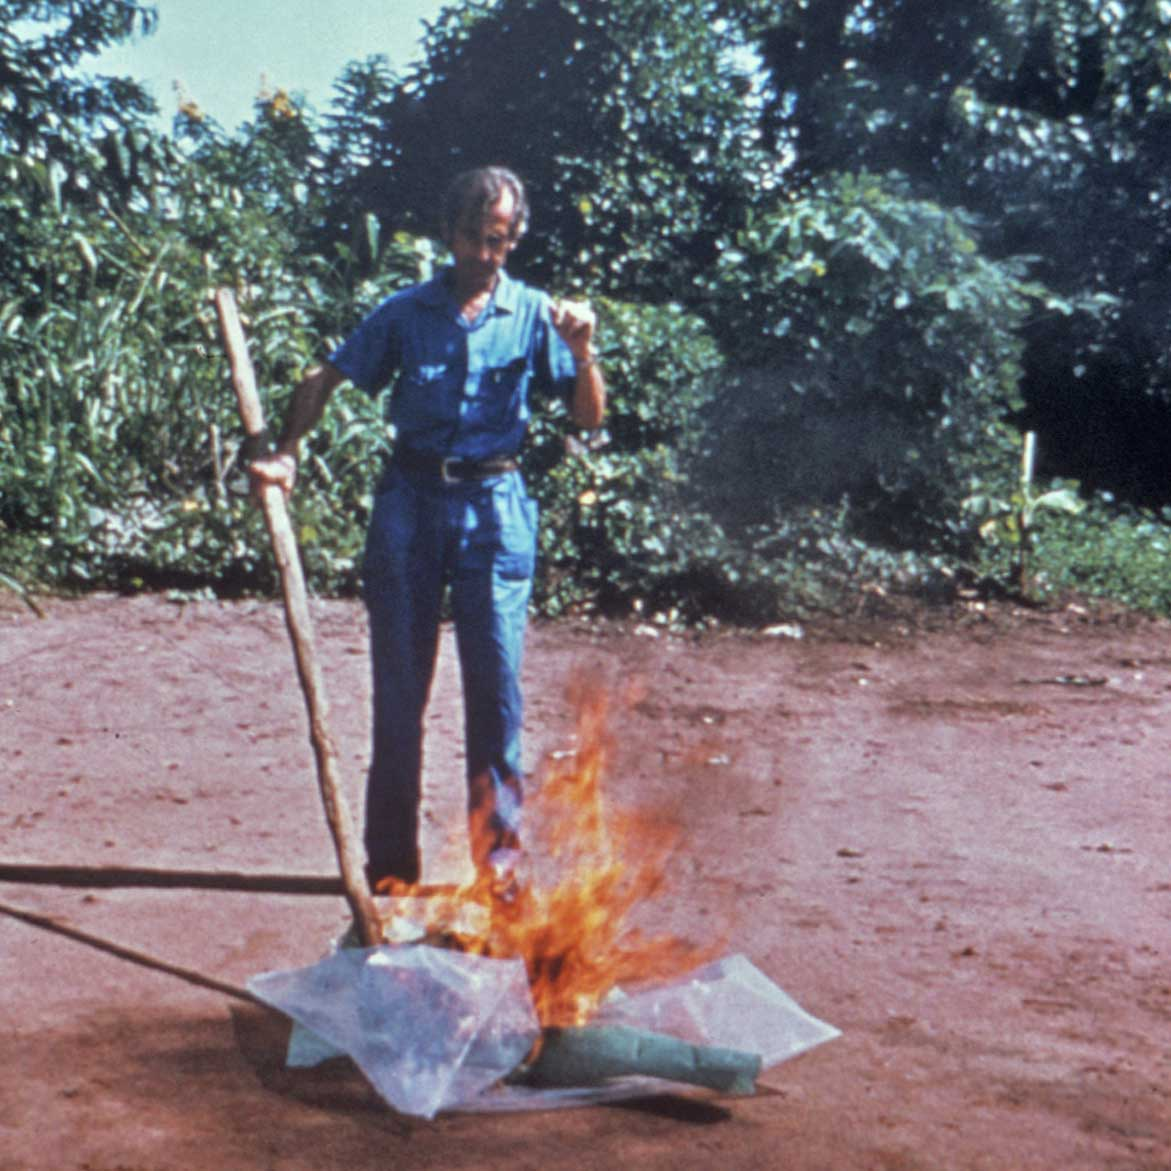 CDC worker incinerates medical waste from Ebola patients in Zaire, 1976. Credit: Centers for Disease Control and Prevention